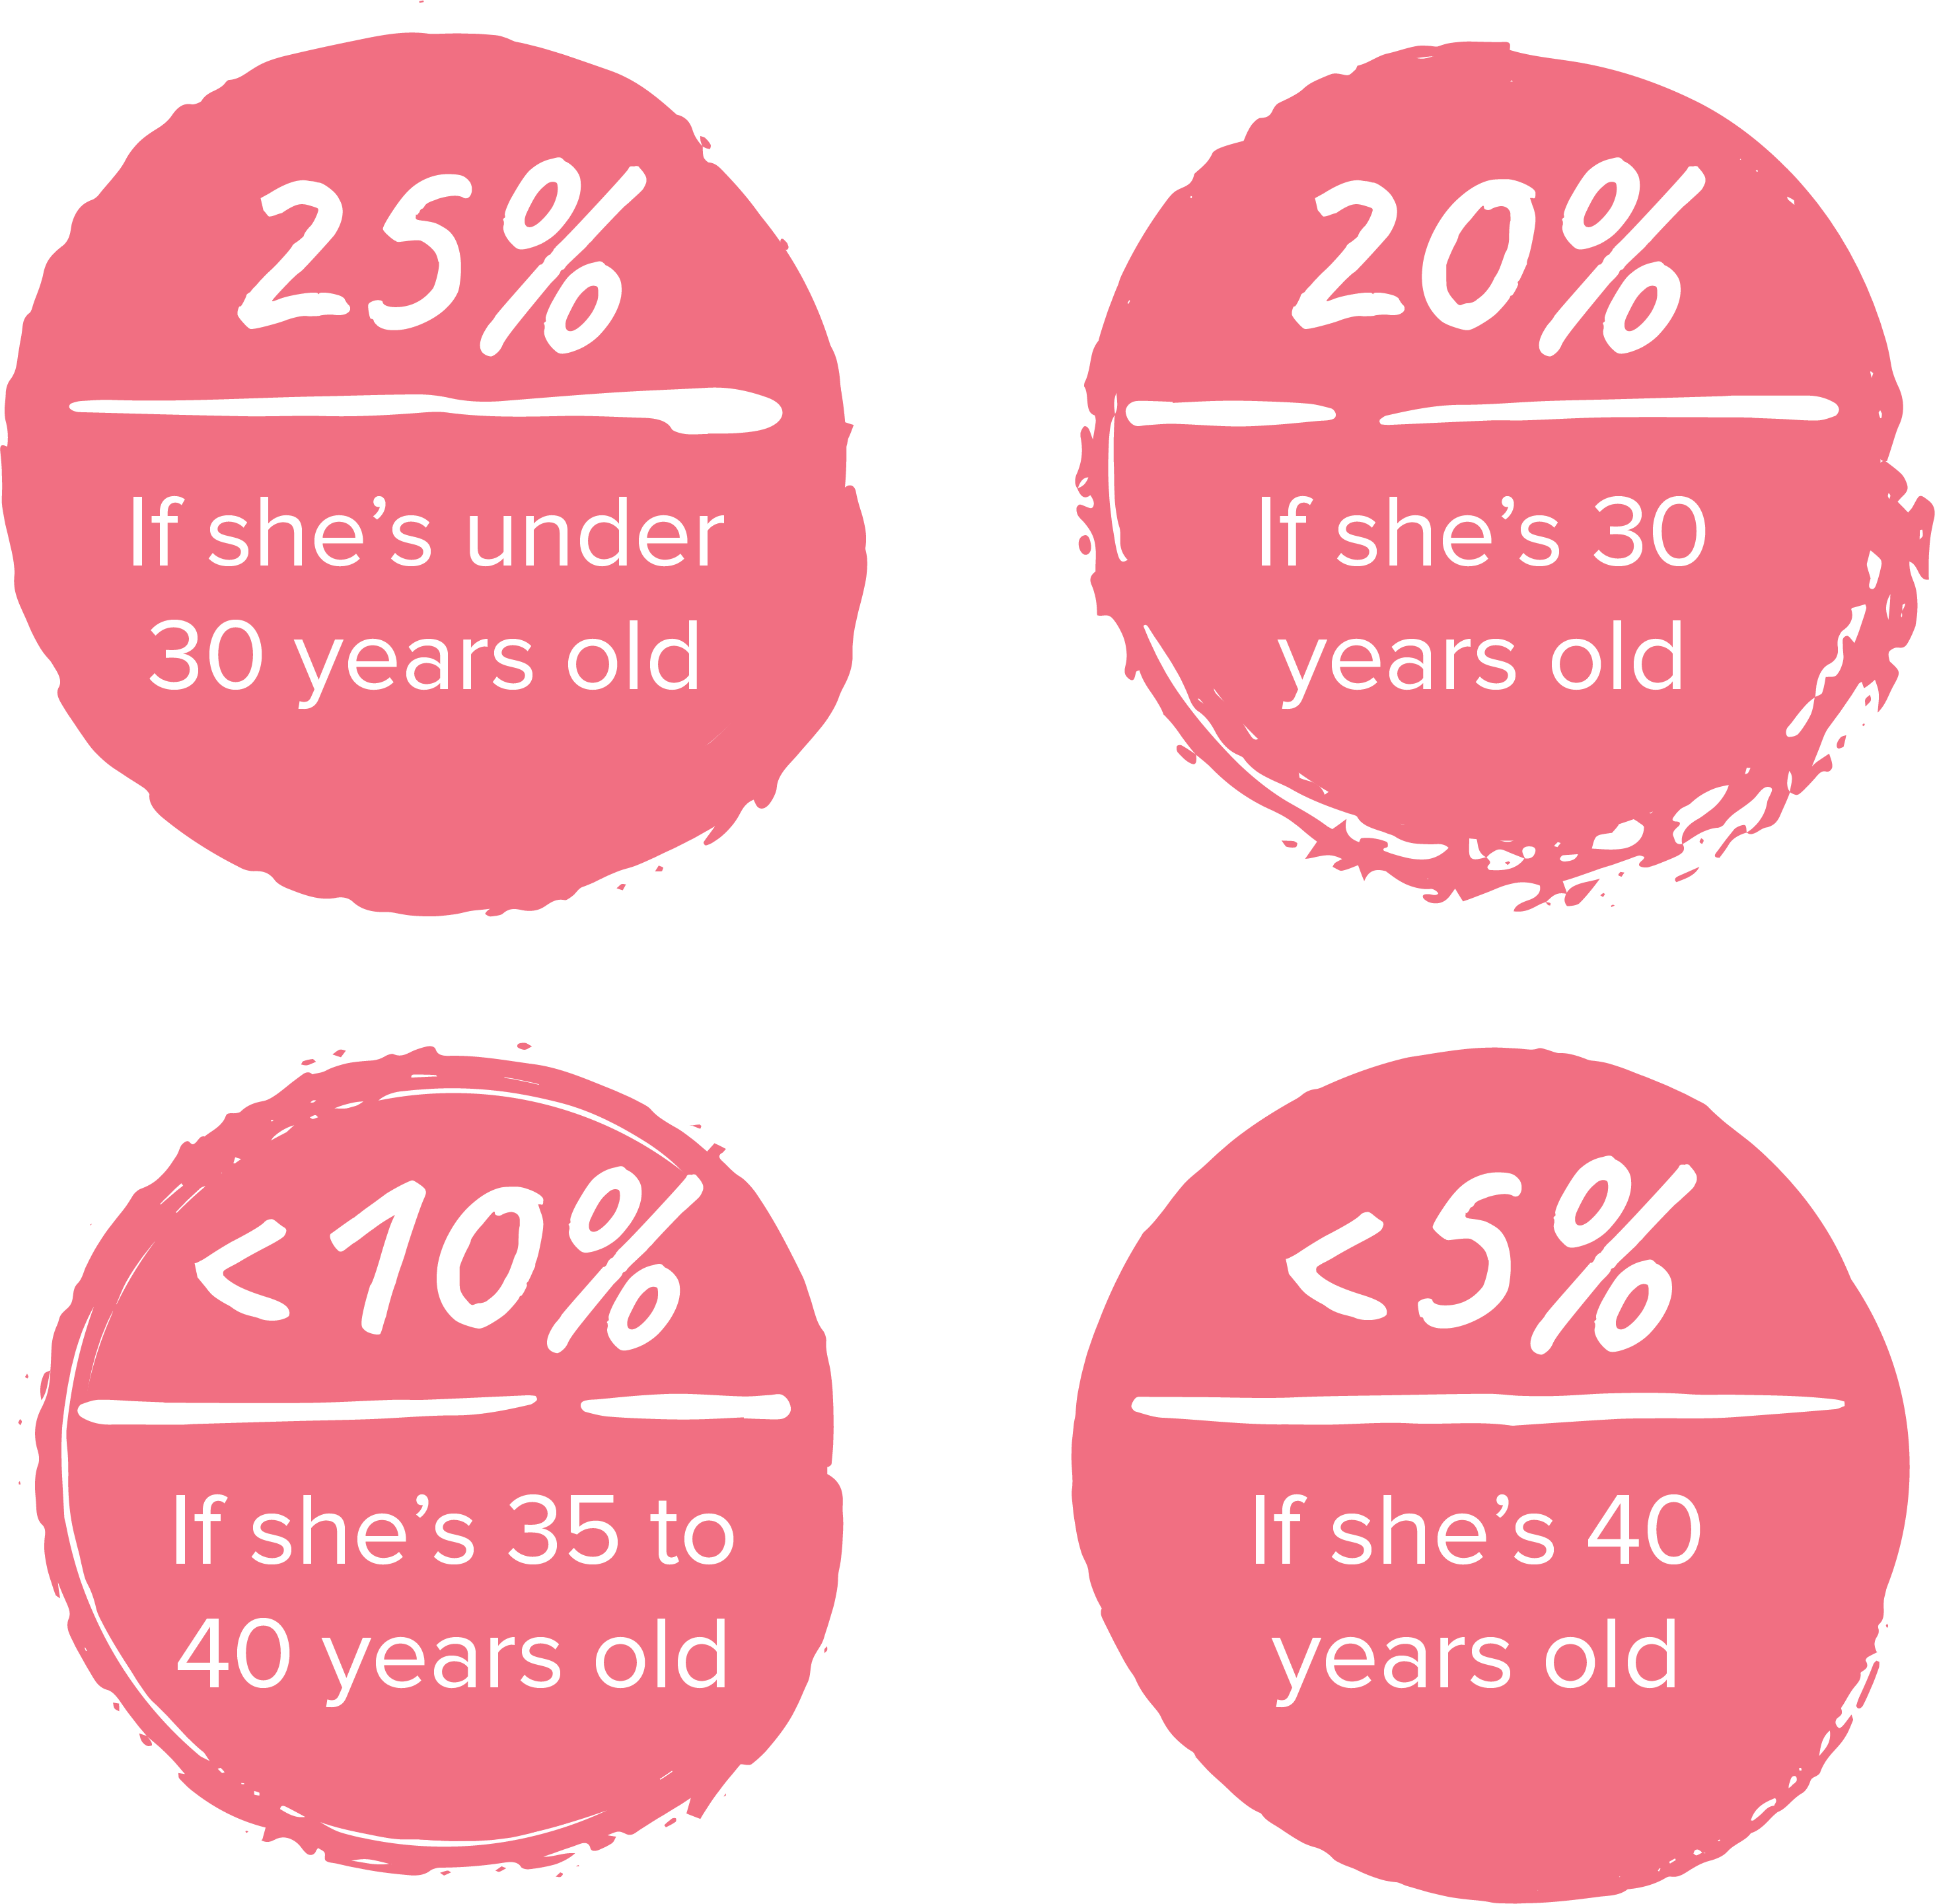 Age and Chances Graphic